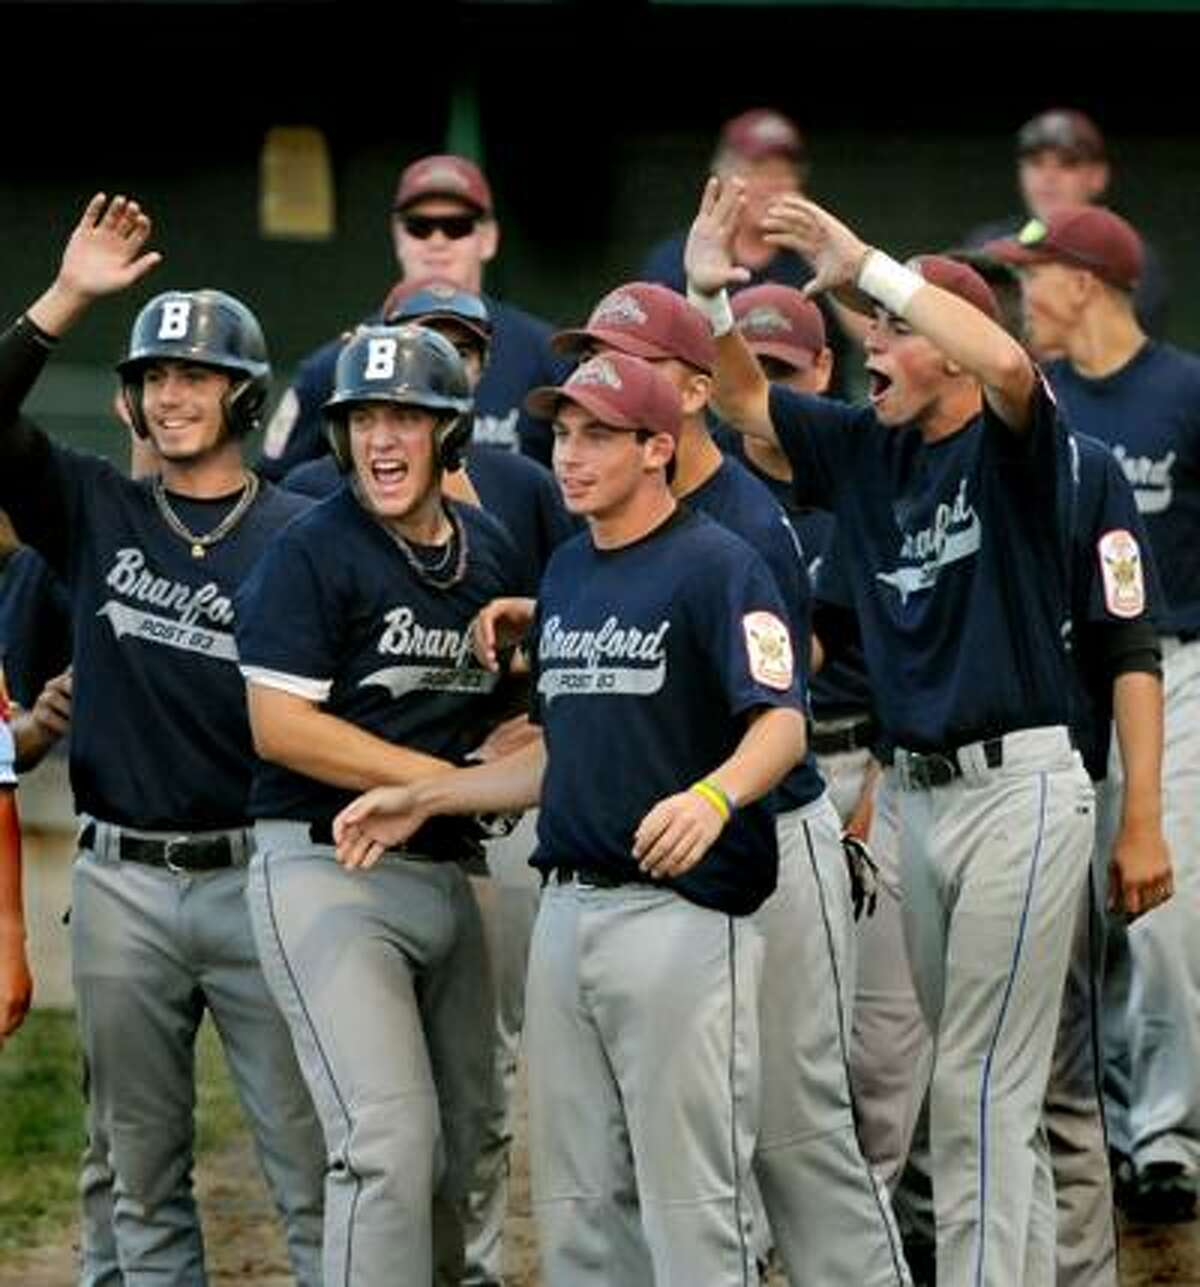 Members of the Branford American Legion team gather at home plate to welcome Michael Forgione (not pictured) after his two-run home run in the fourth inning of their 5-0 win over Goffstown (N.H.) Saturday night at Palmer Field in Middletown. (Melanie Stengel/Register)